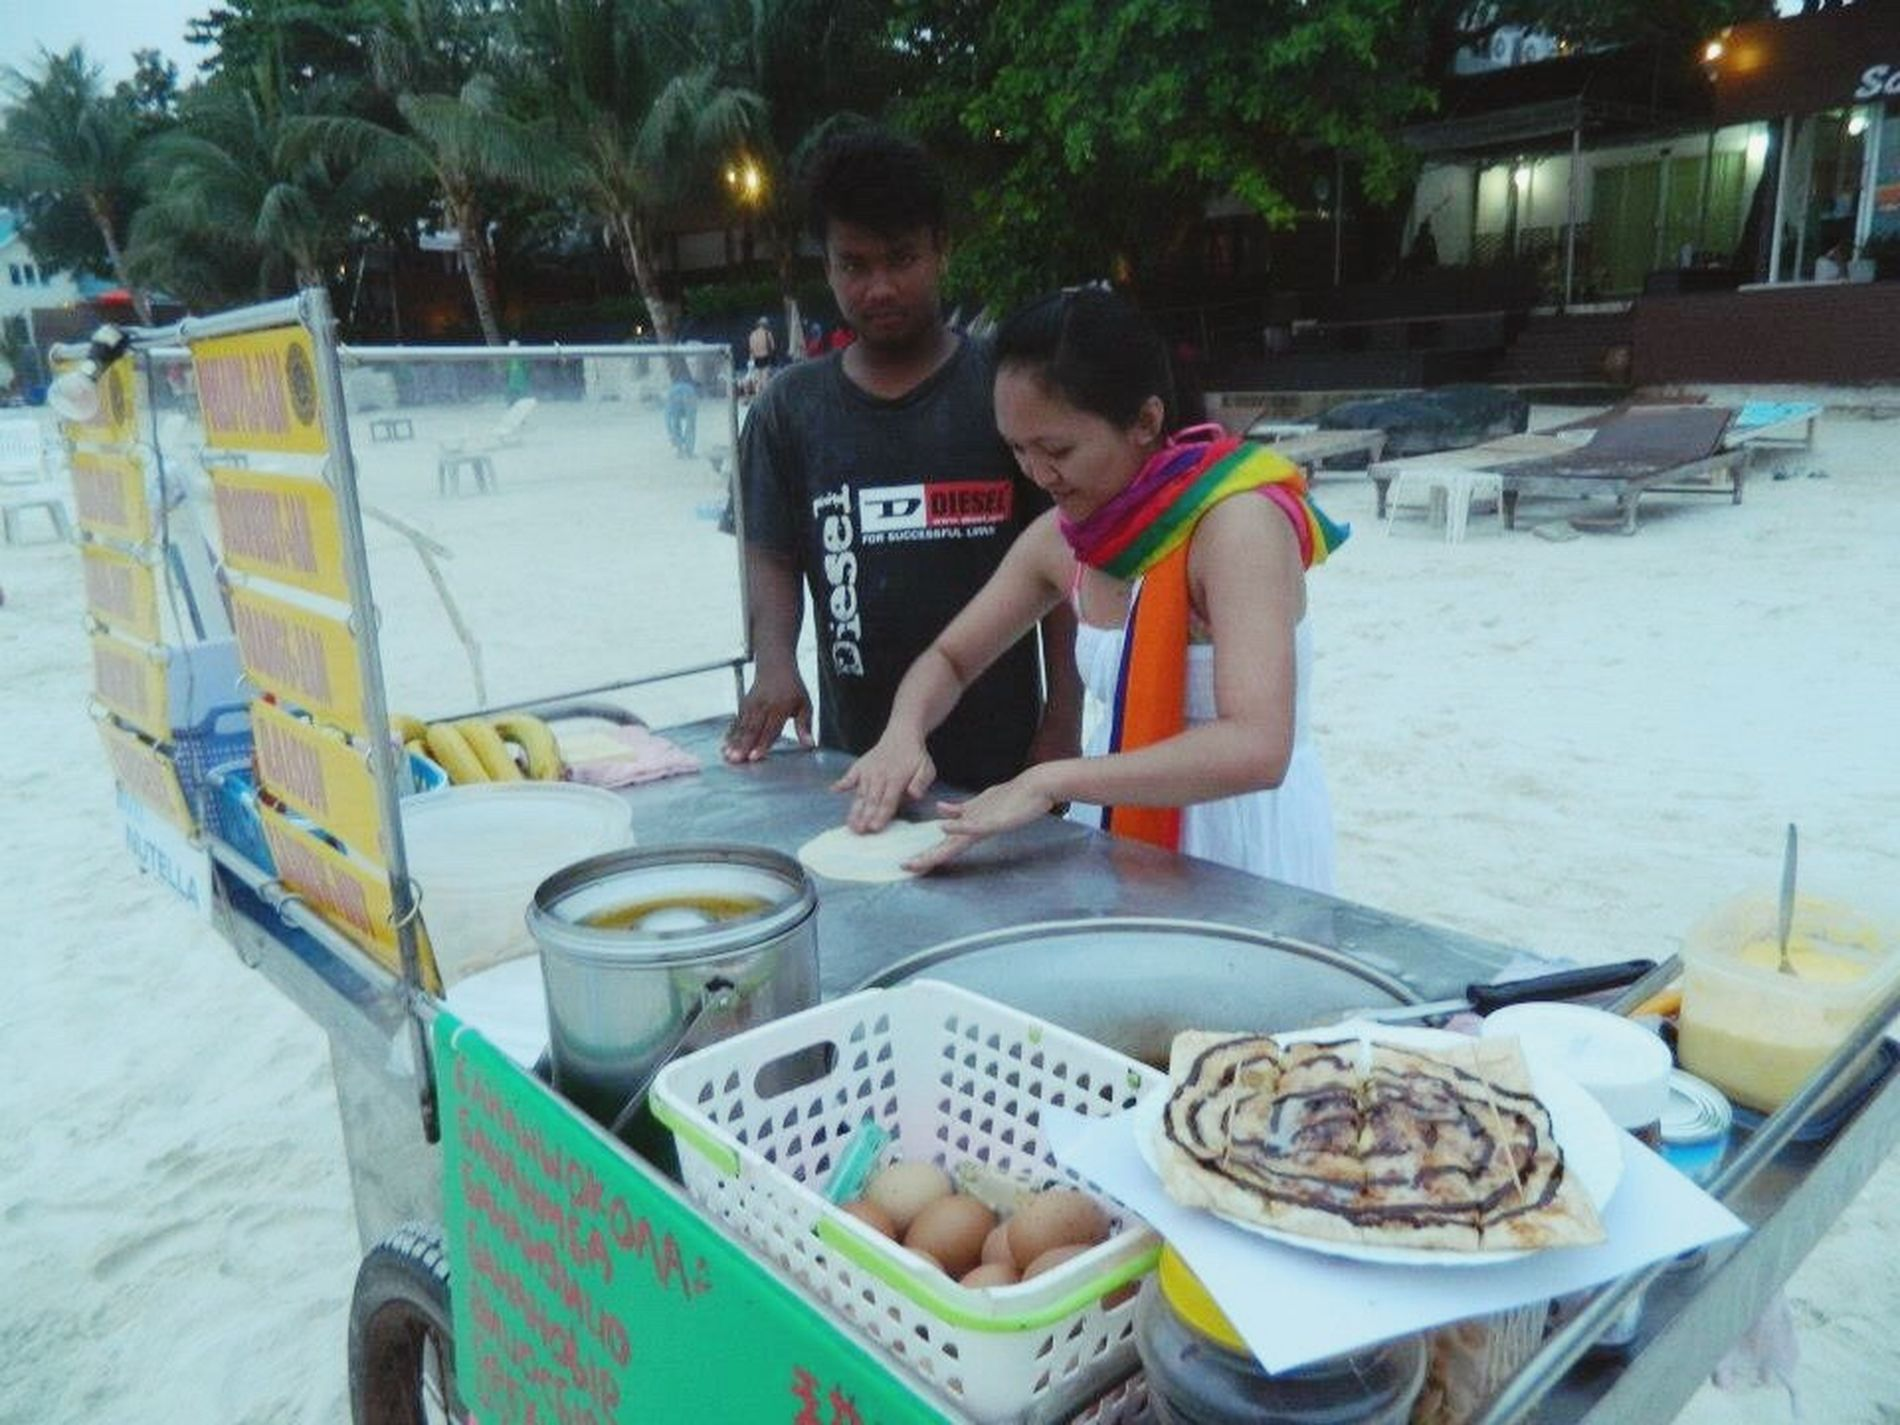 Kicking out the street vendor from his station and me learning to make this delicacy. A meddling tourist, that I am! 😂 Tourist Amazingthailland Kohsamed Traveler Backpacker Streetvendor Meddlingtourist Touristy Wanderlust Wanderer Beachlife Beachaddict Dessert Streetfood Delicacy The Tourist